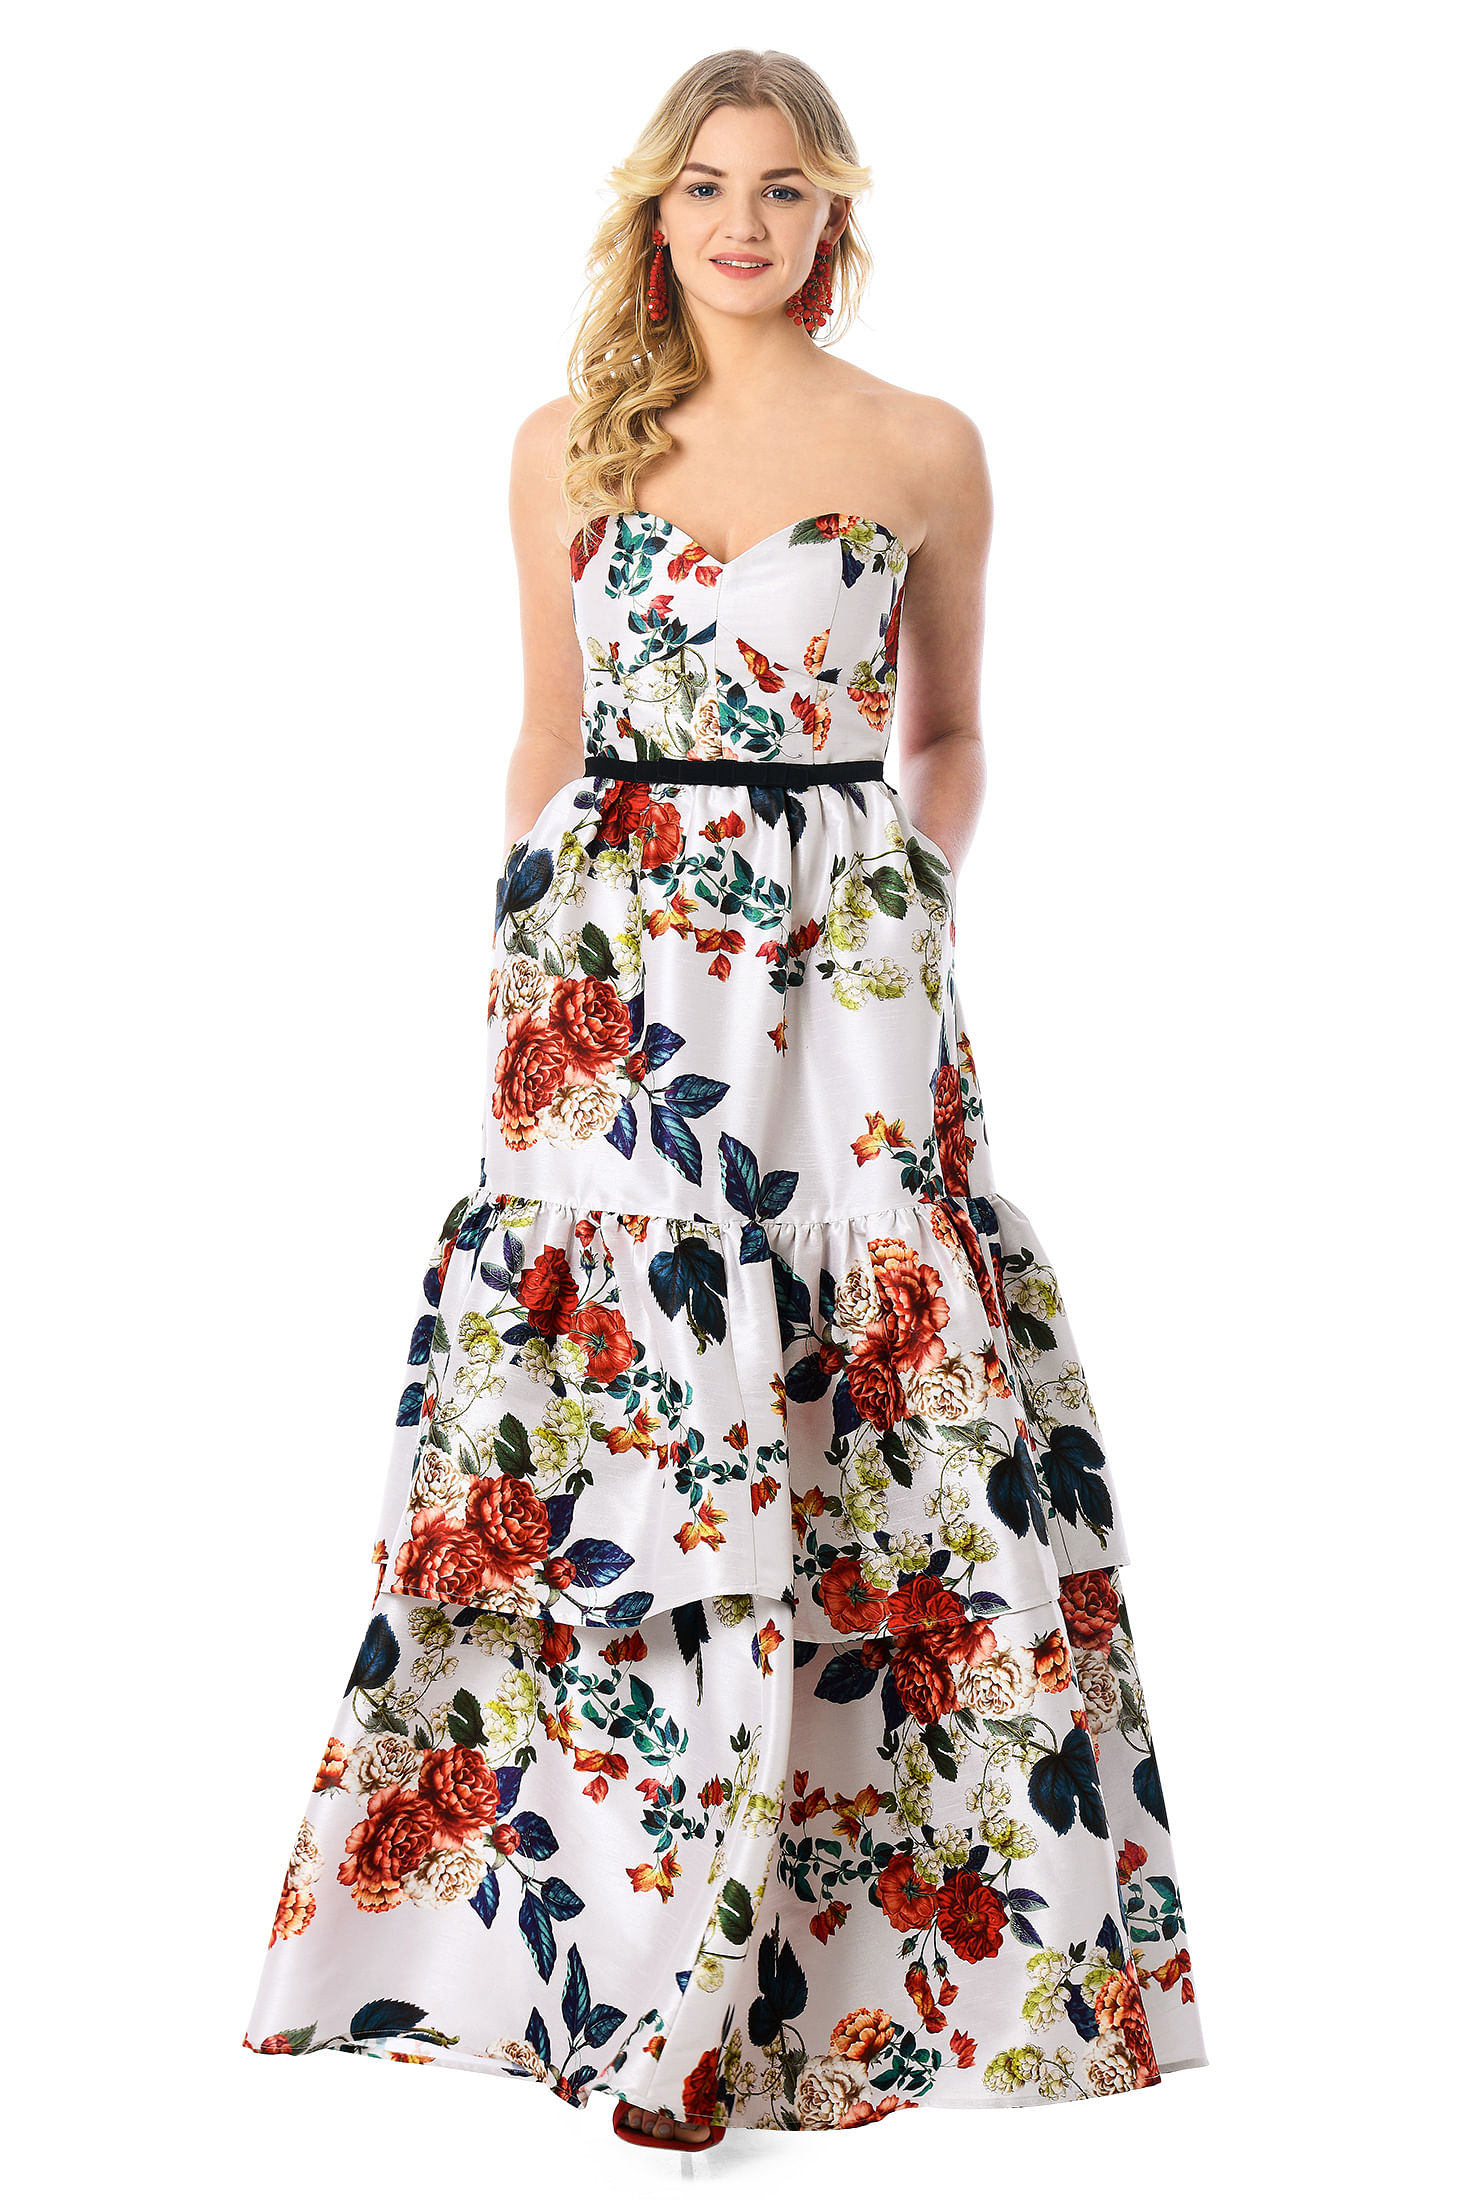 Women\'s Fashion Clothing 0-36W and Custom